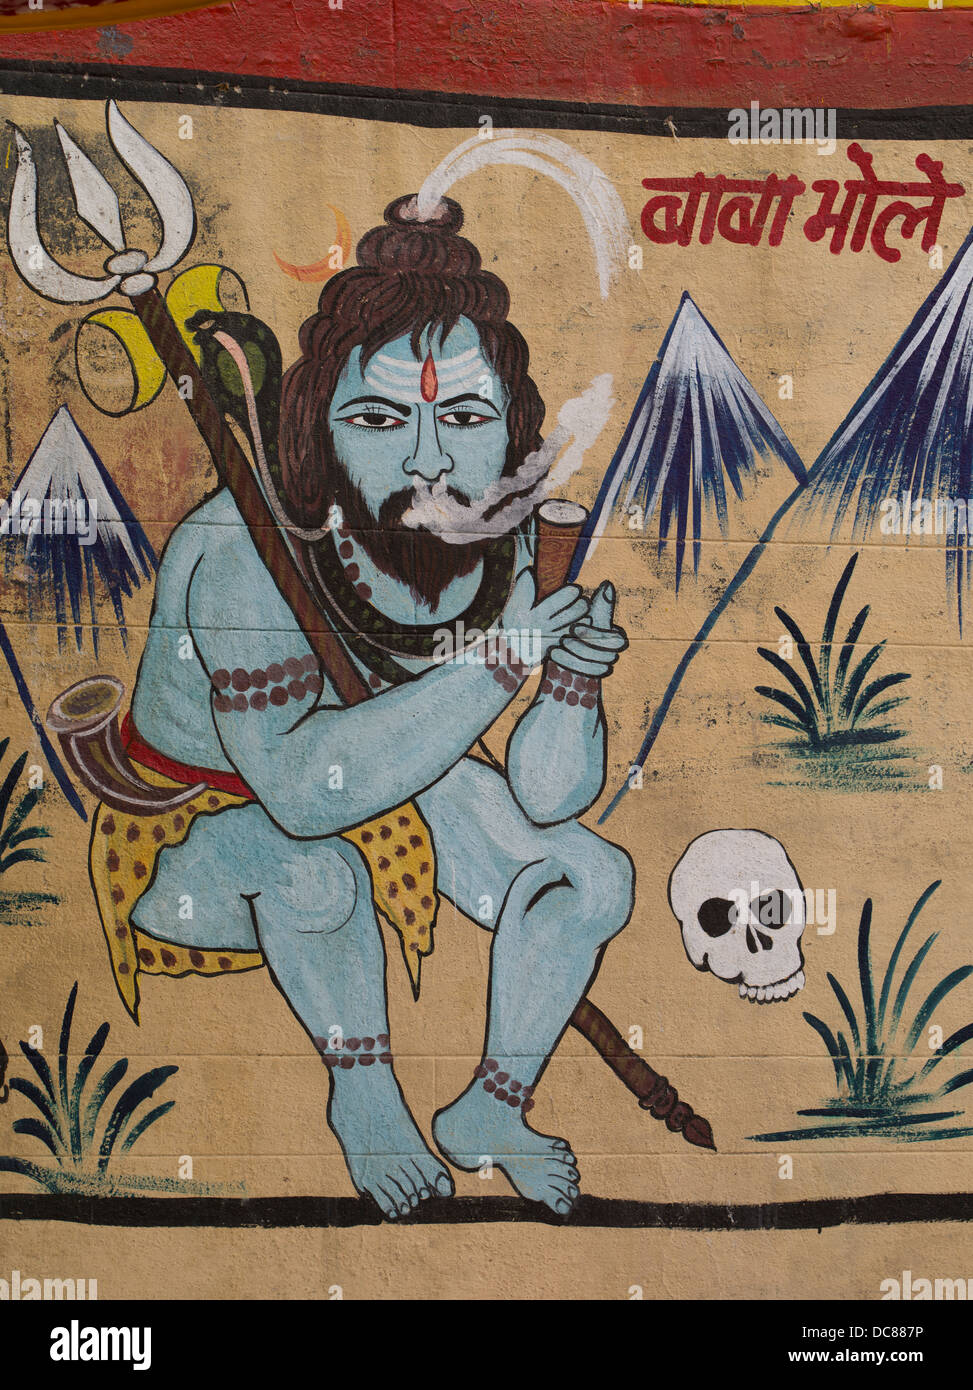 Indian Hindu Mural High Resolution Stock Photography And Images Alamy